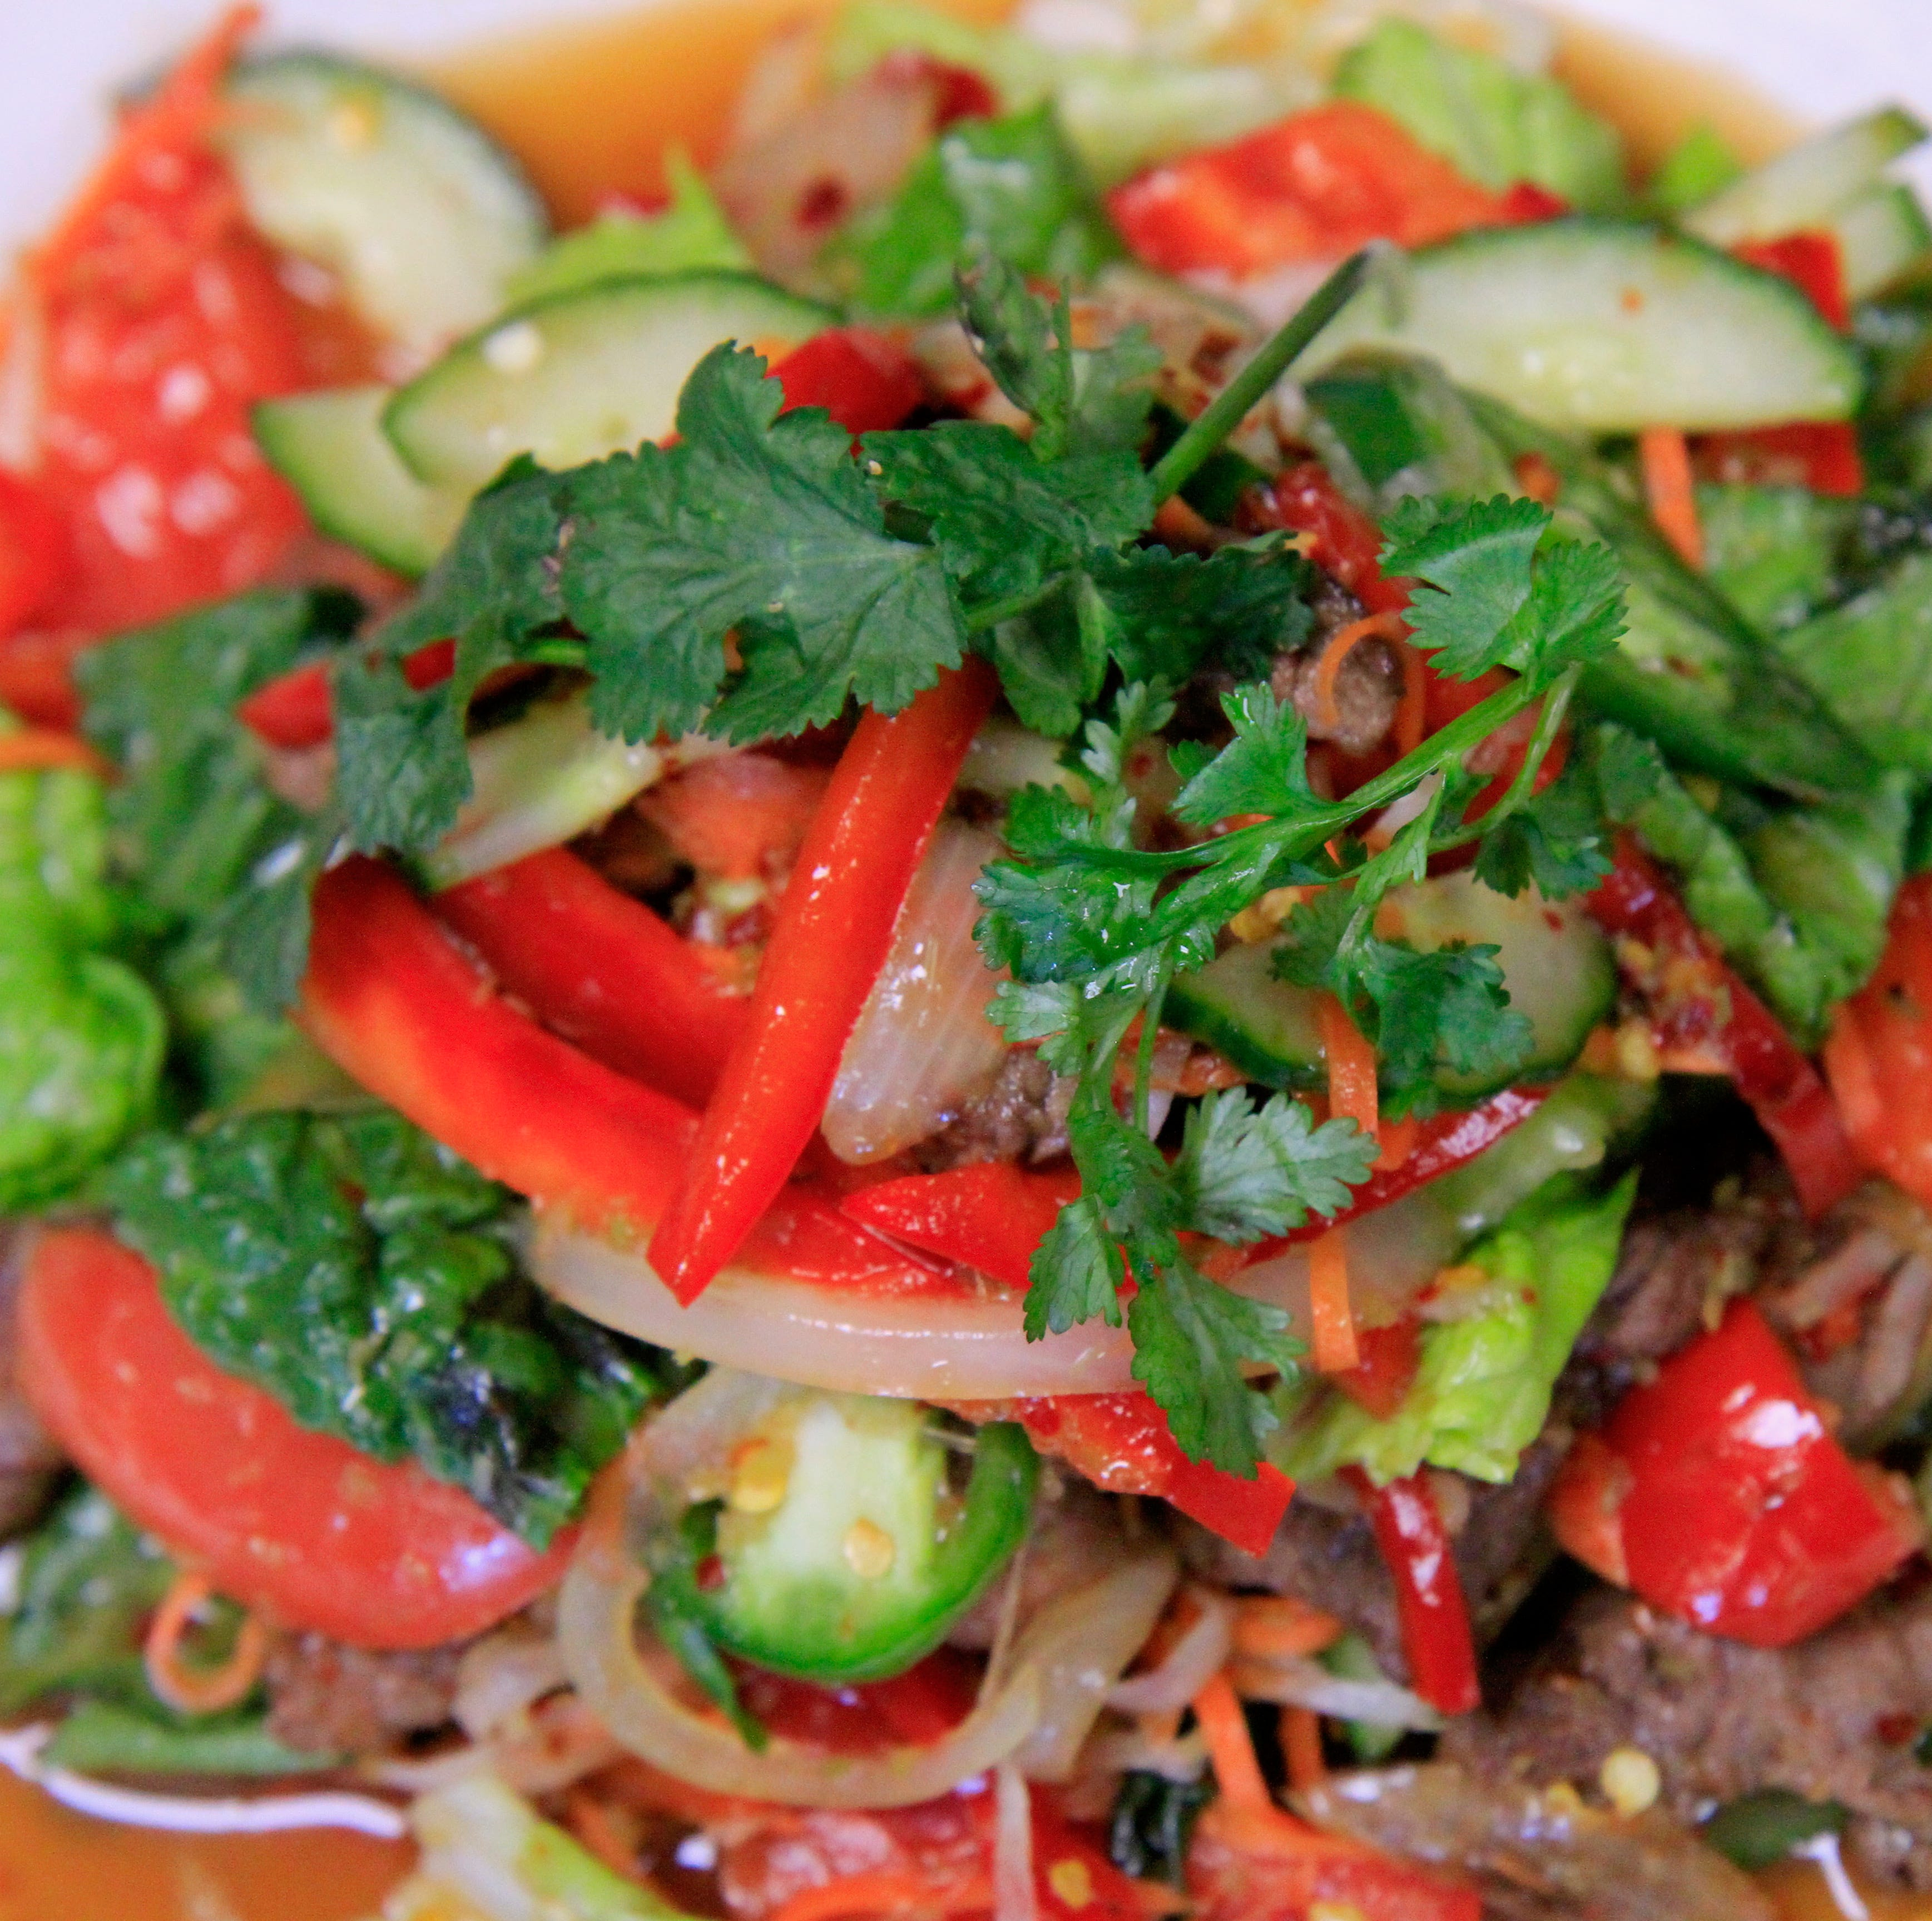 5 things to try at Great Falls' new Vietnamese restaurant Pho Vi Tai